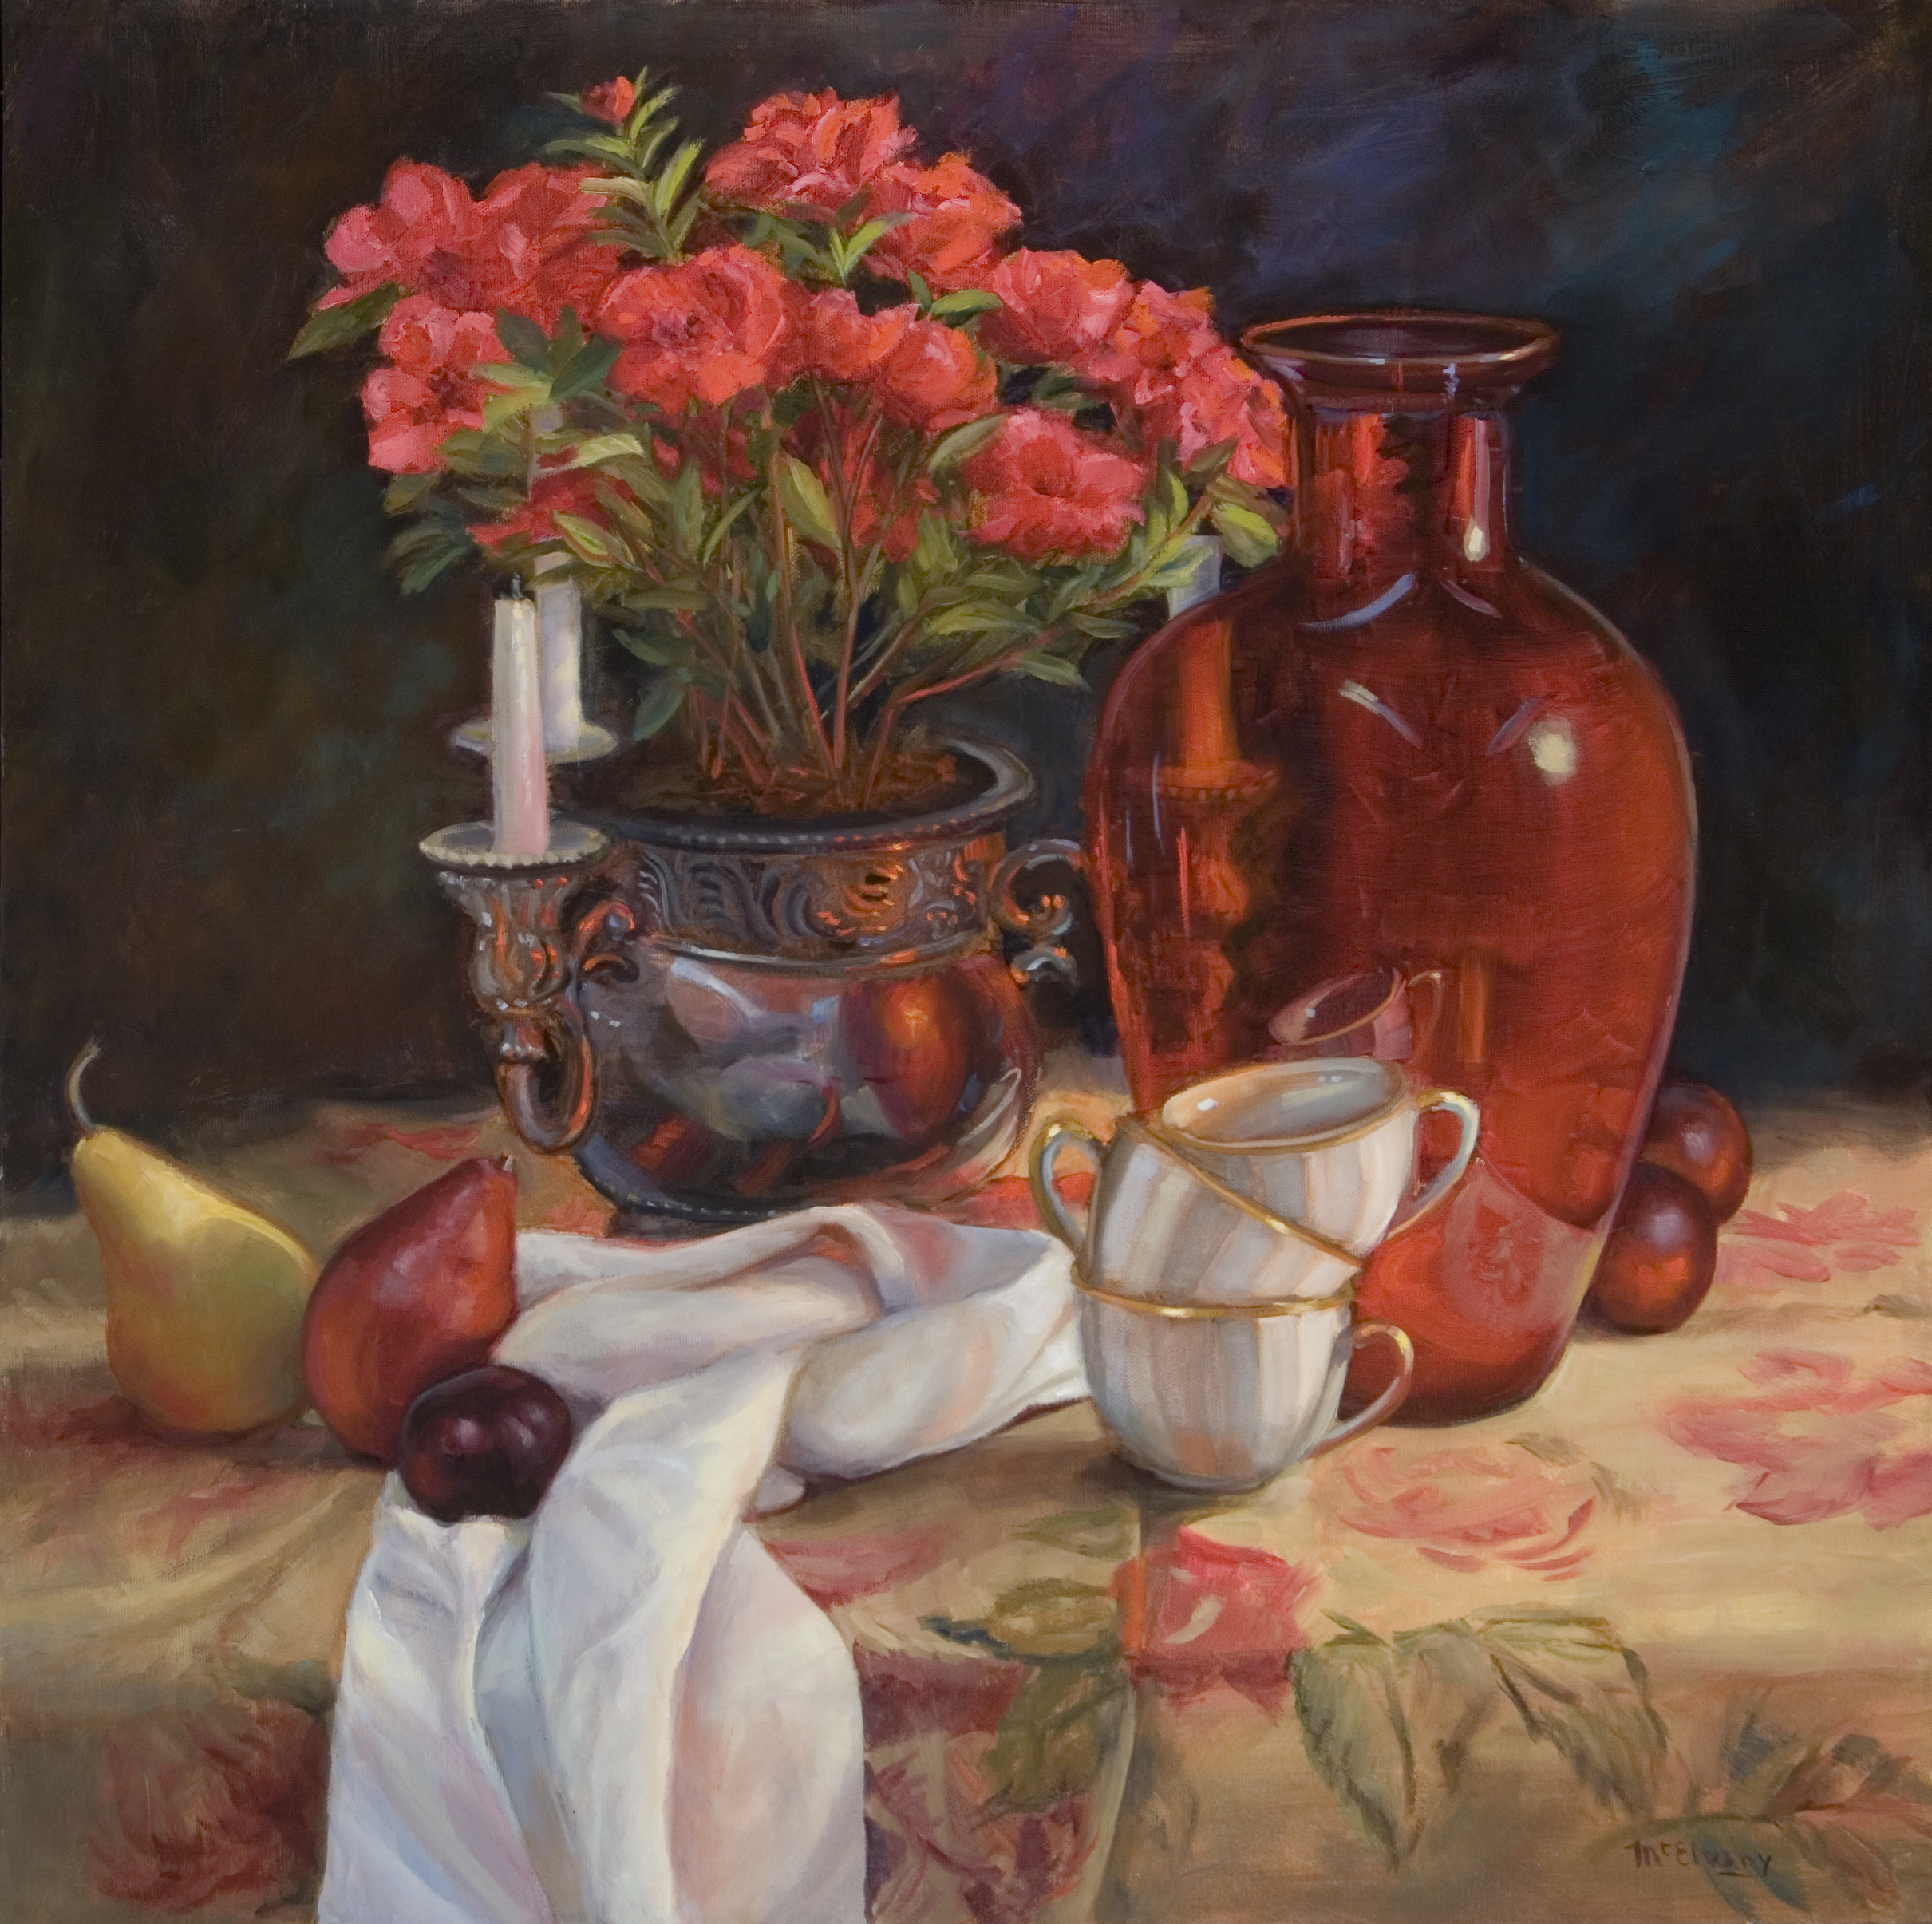 Giclee, Prints, and Cards